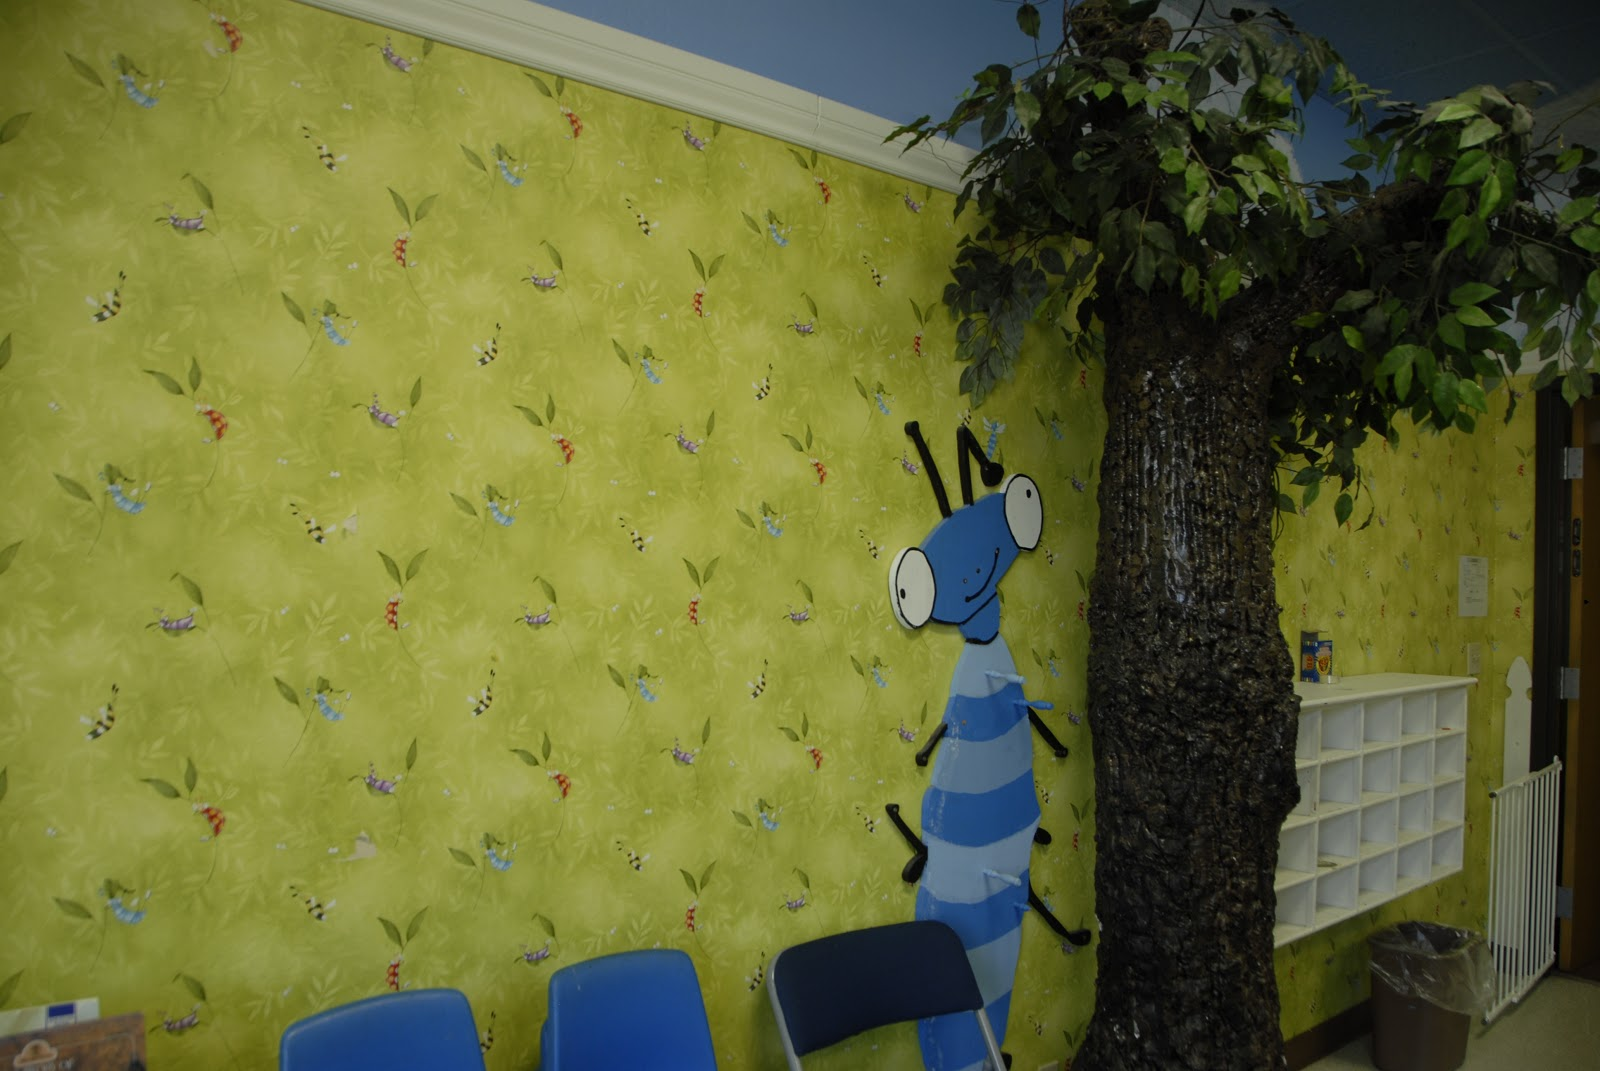 Blue chairs and blue bug in classroom